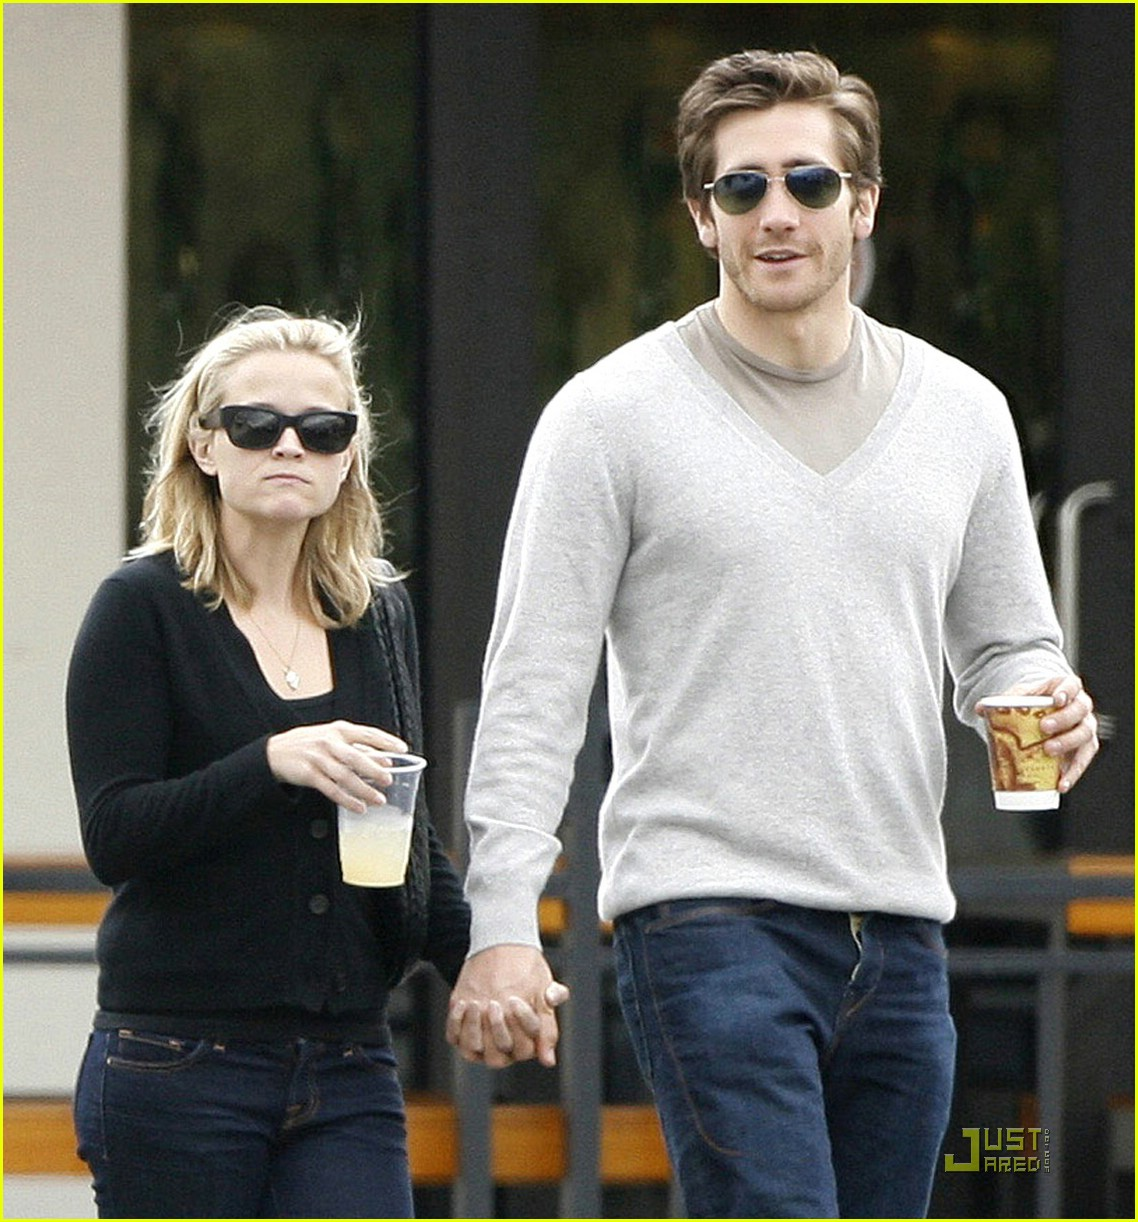 Full Sized Photo of reese witherspoon jake gyllenhaal ... Jake Gyllenhaal